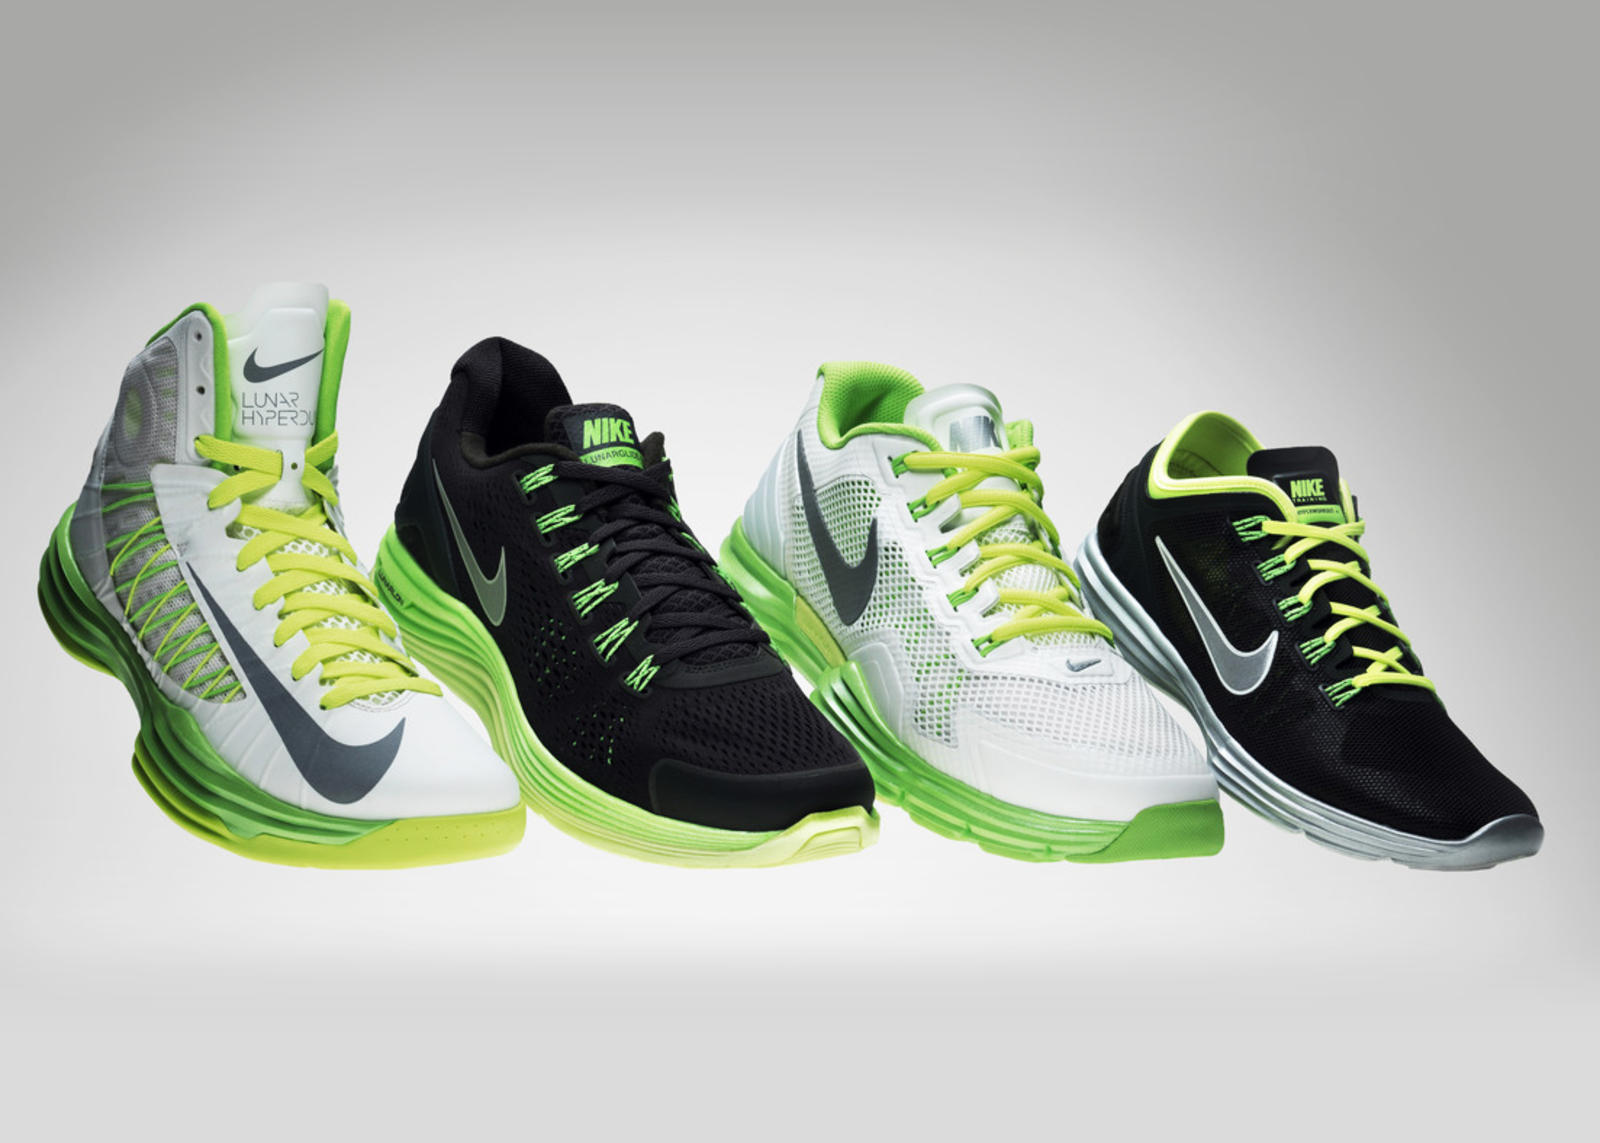 e2b2a252b769 NIKE Lunarlon Collection delivers revolutionary cushioning system - Nike  News